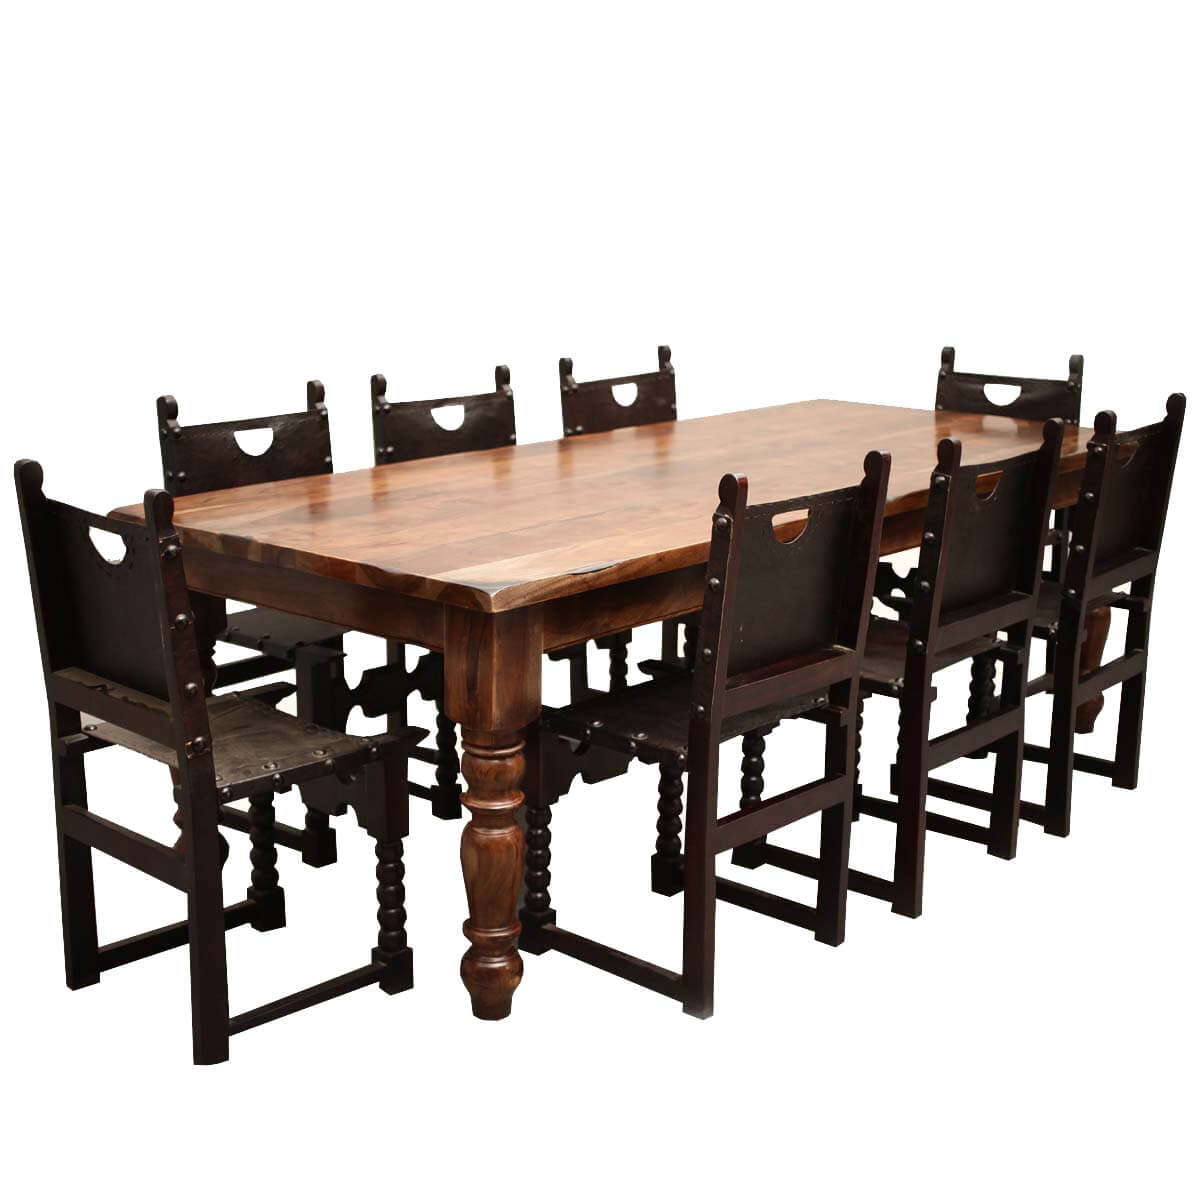 Classic Rustic Acacia & Leather Dining Table Chair Set